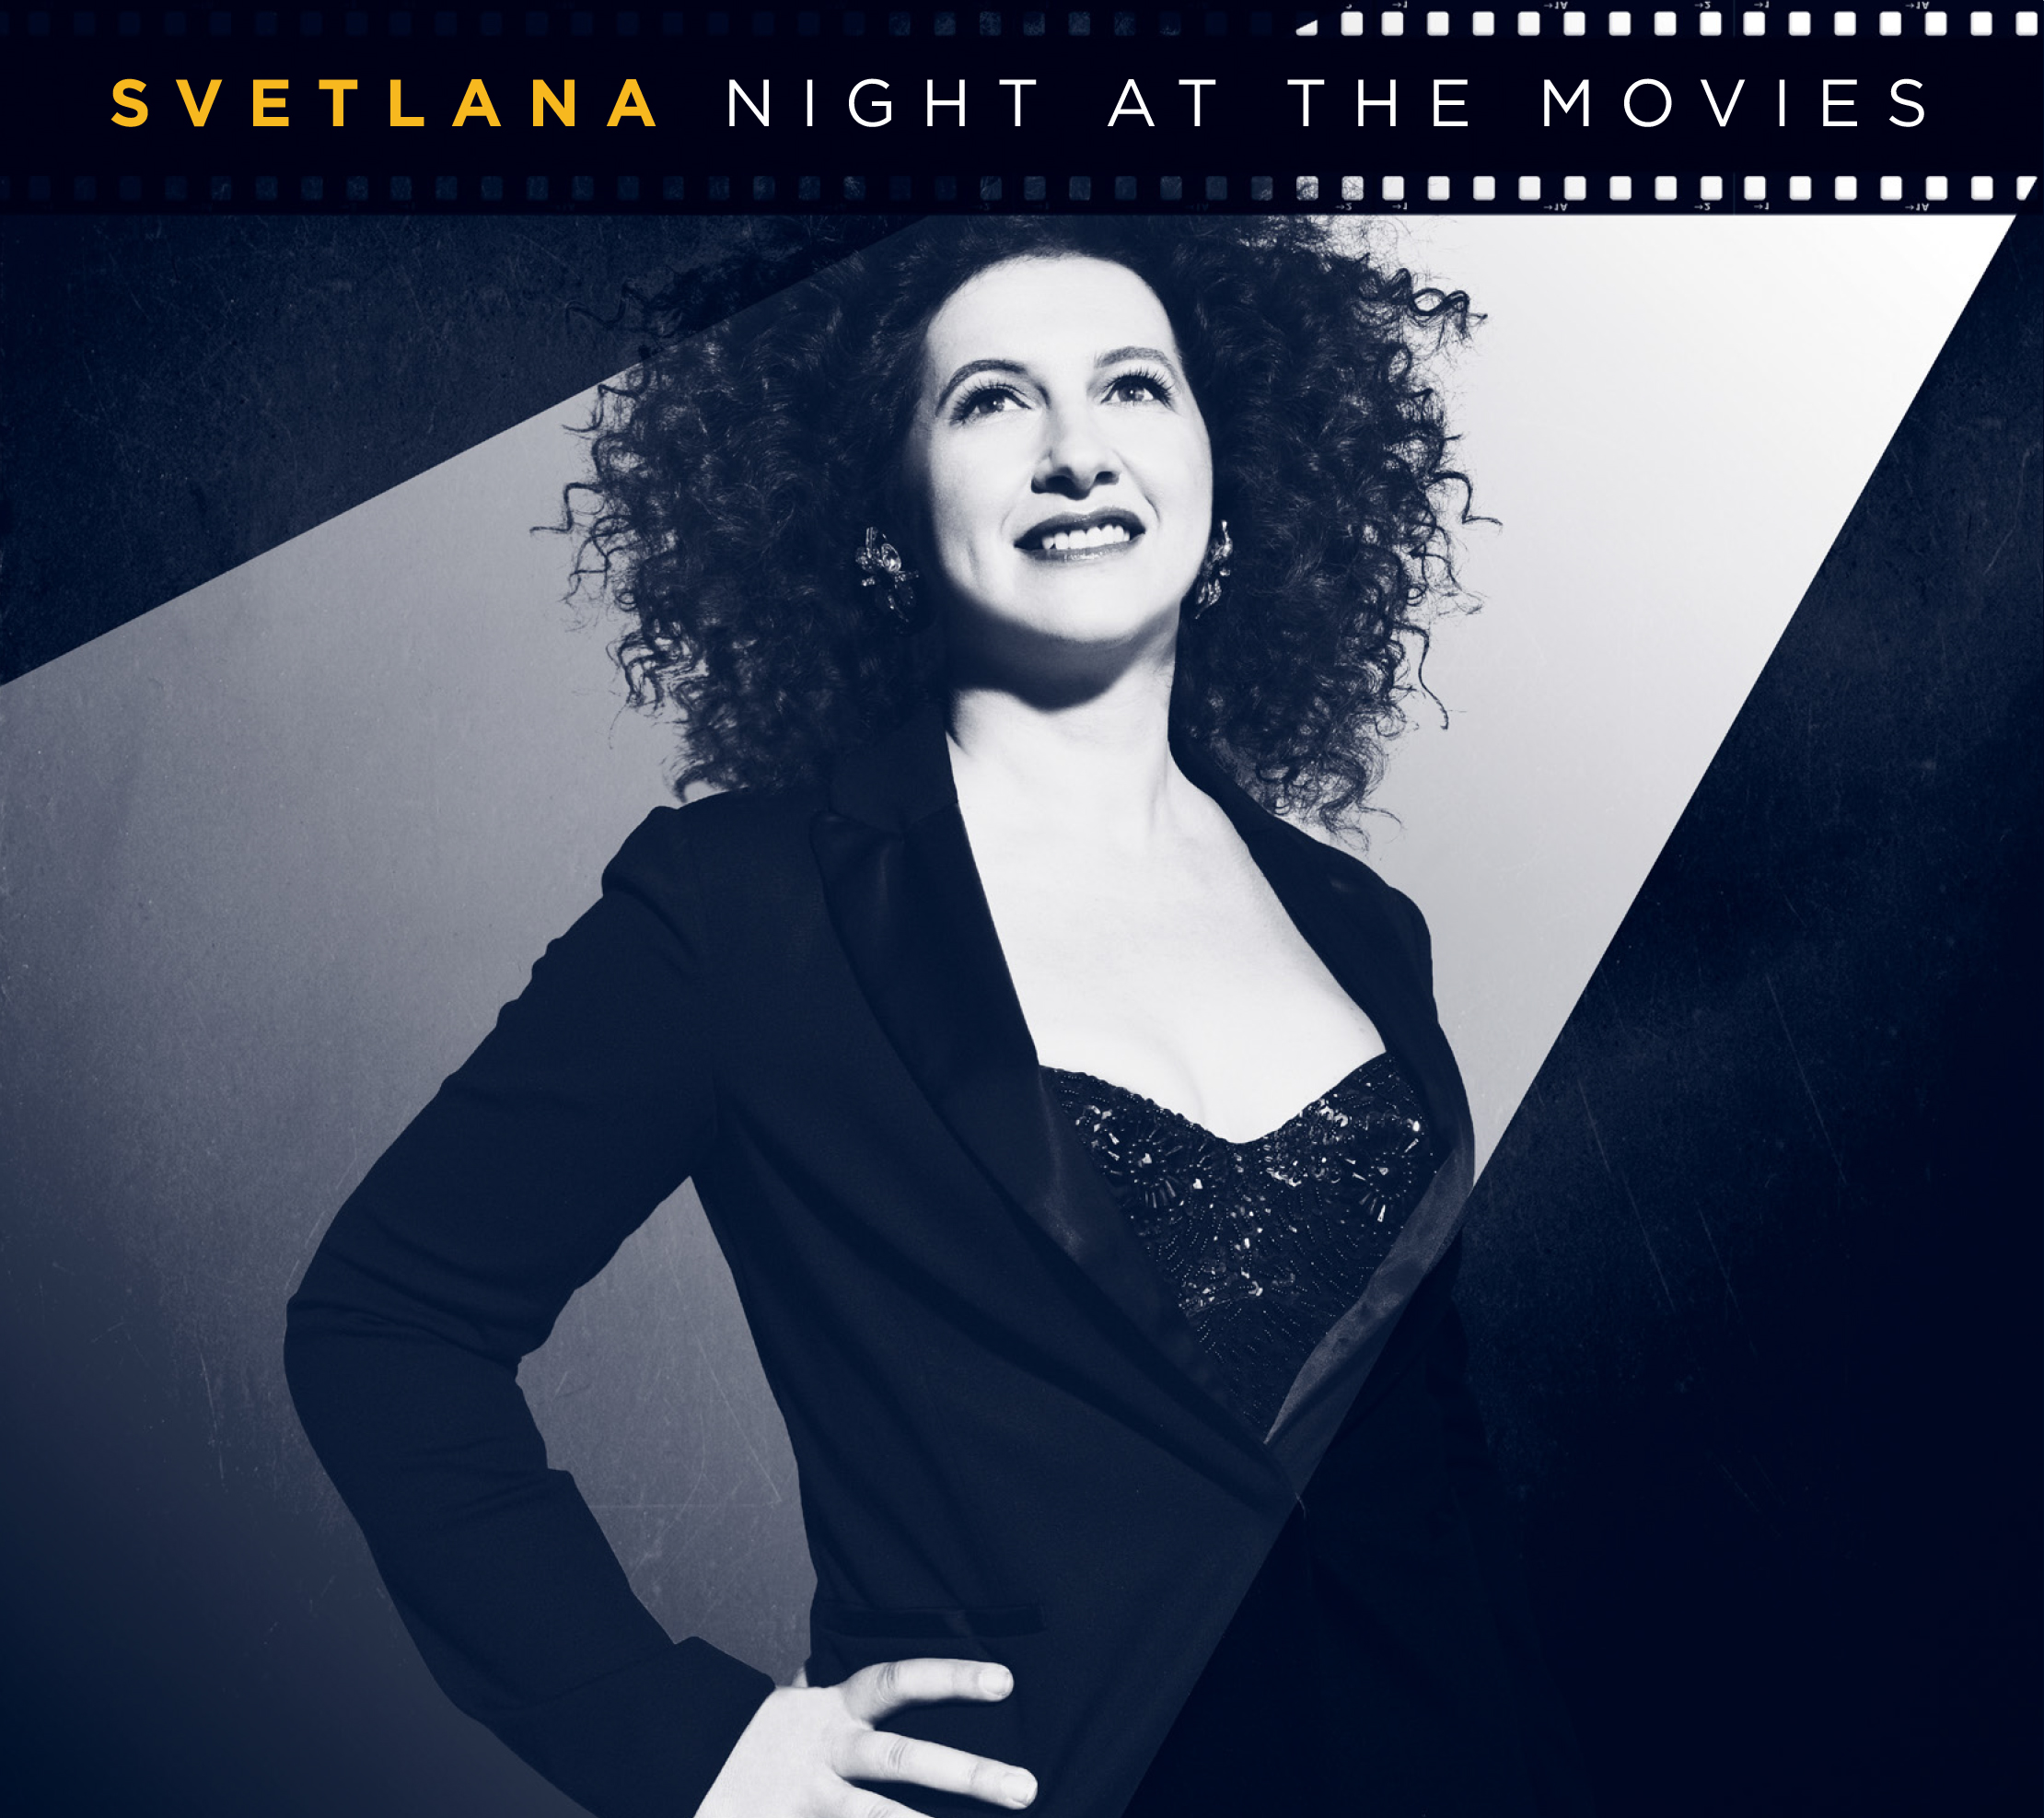 """NEW RELEASE: Svetlana's """"Night at the Movies"""" is a Love-Letter to the Cinema and Dreams out 9/20"""